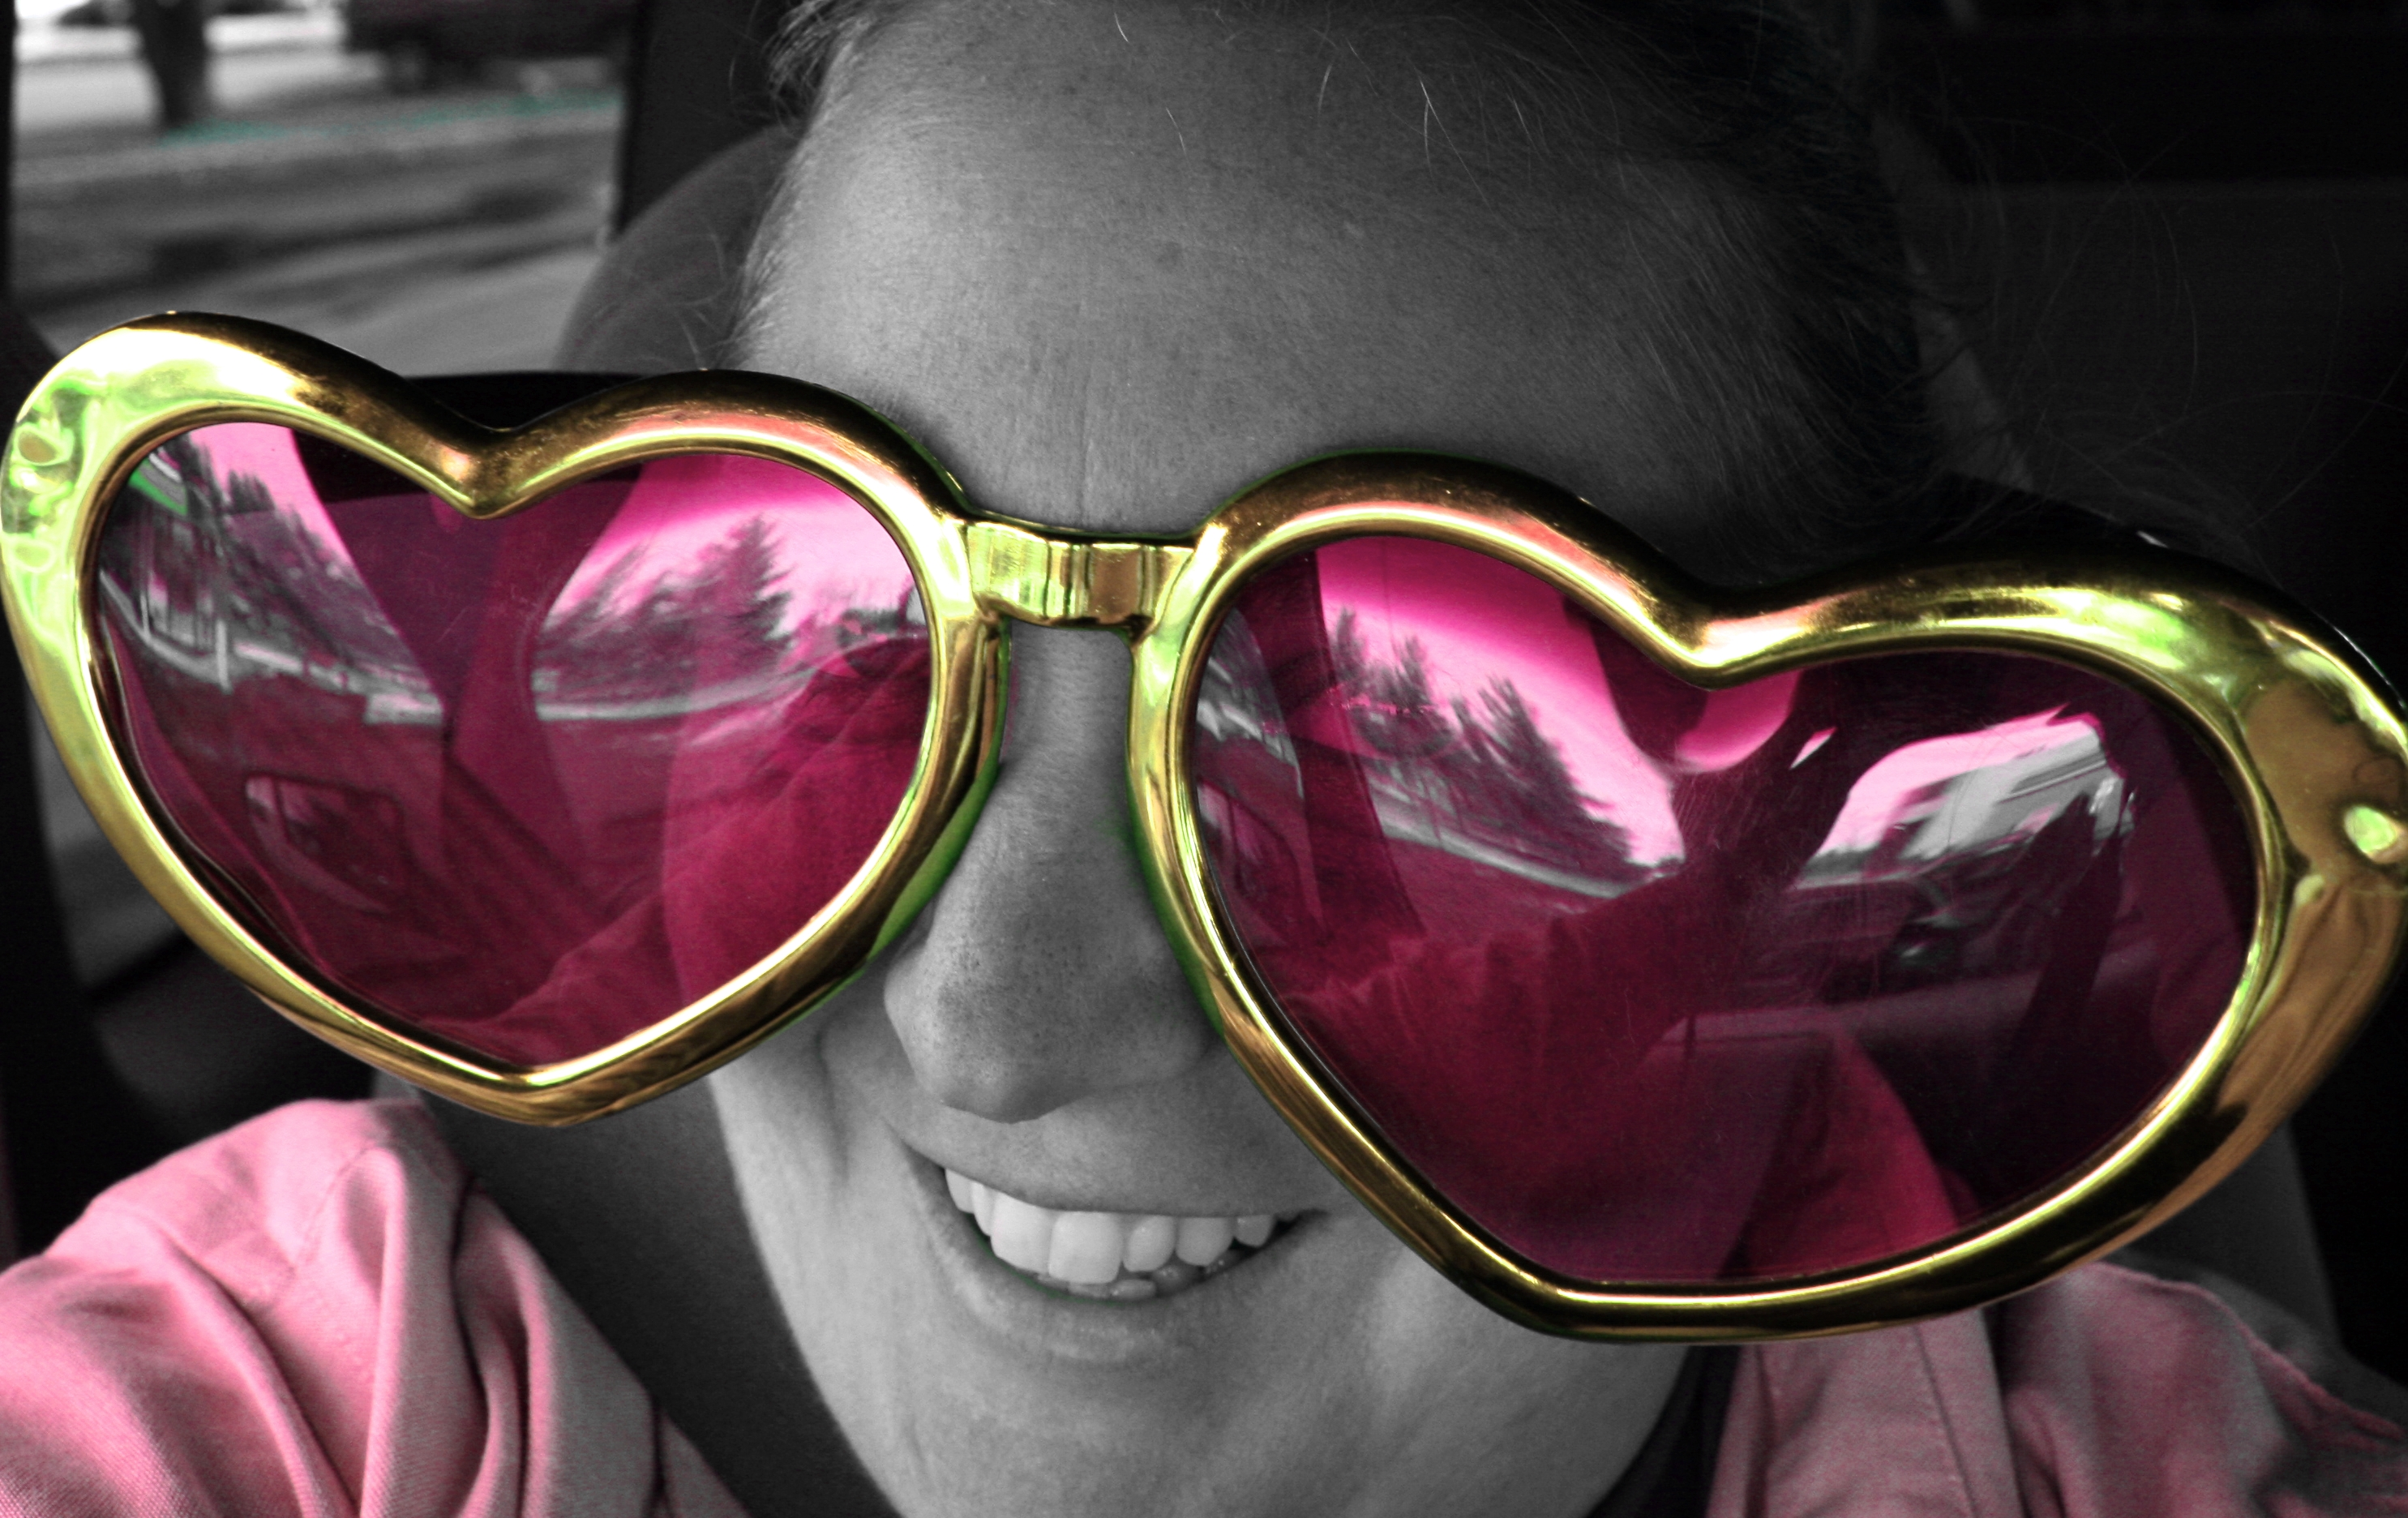 966734d615d File Free Smiling In Pink Heart Sunglasses.jpg - Wikimedia Commons